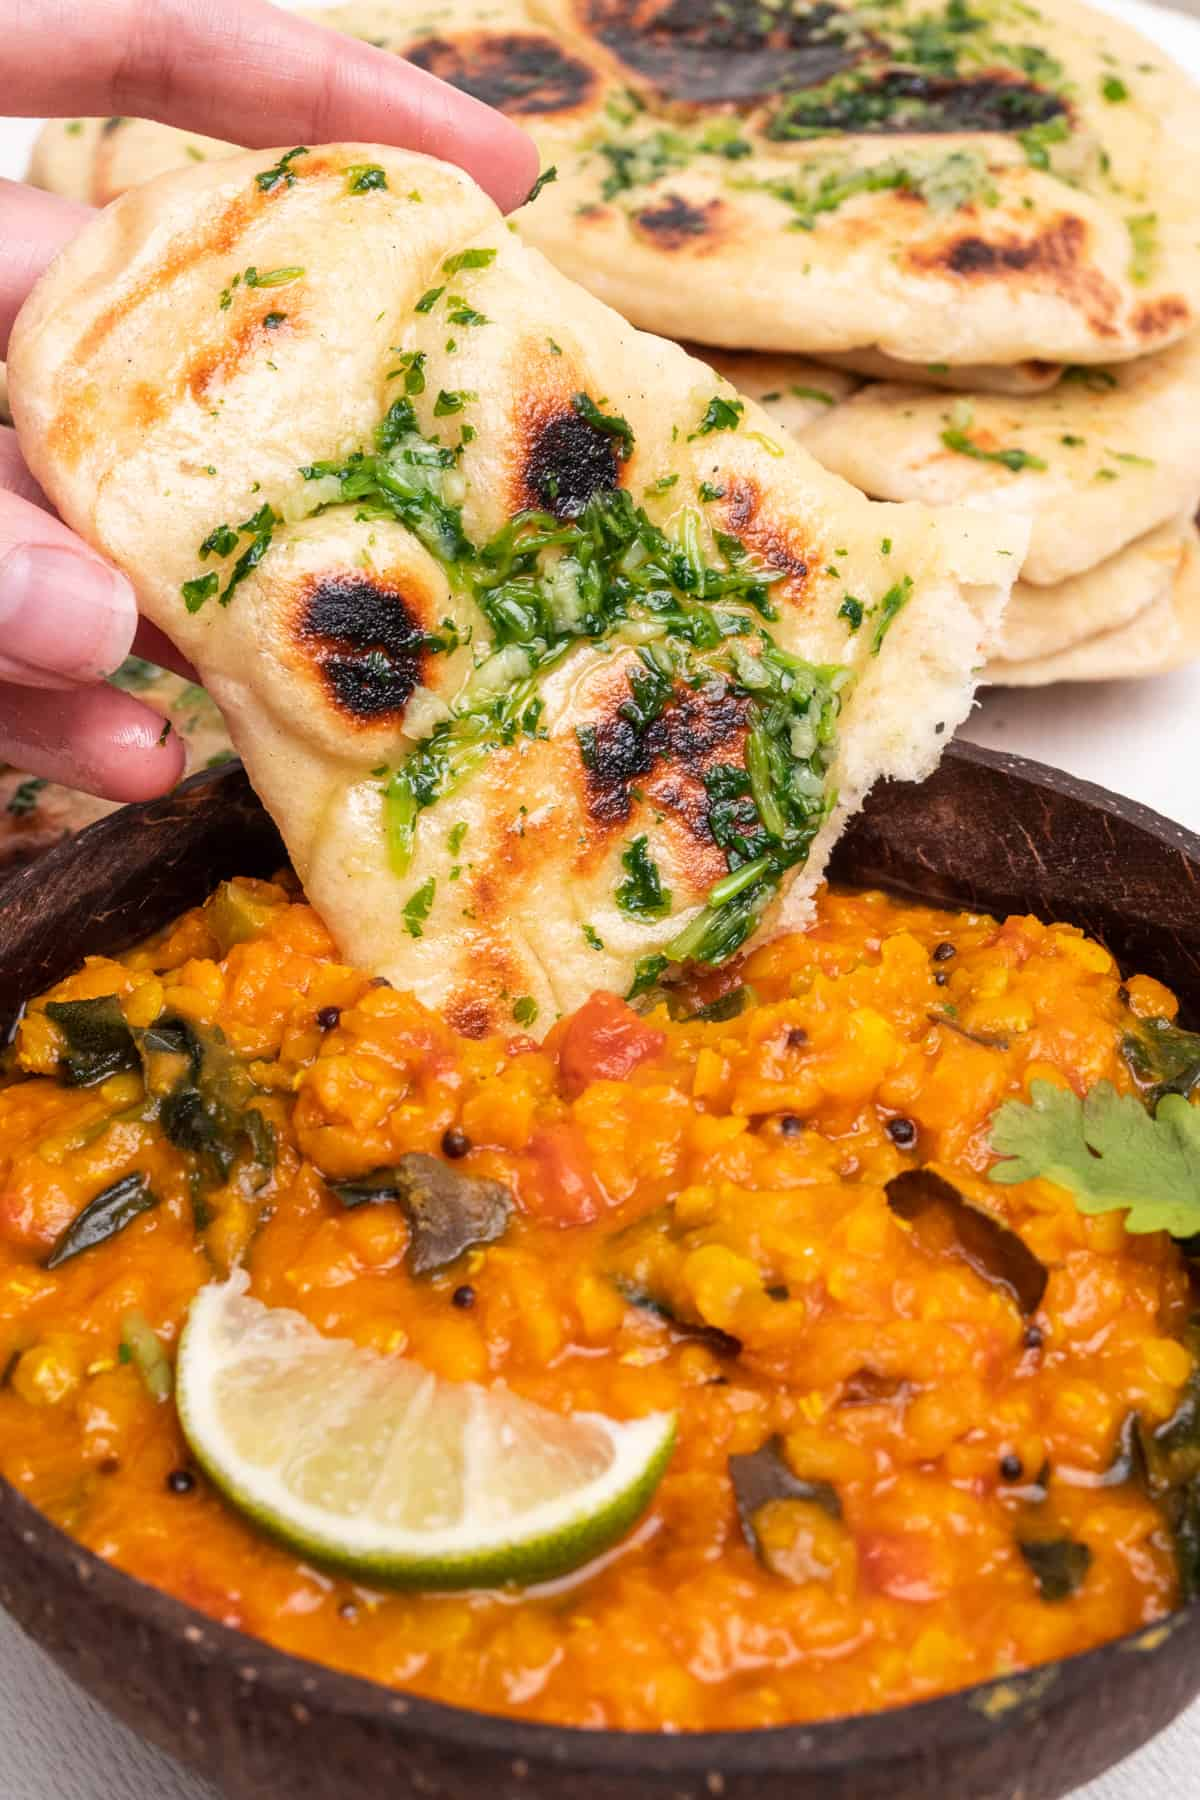 Garlic and coriander naan bread dipped into a red lentil curry. A perfect combination!